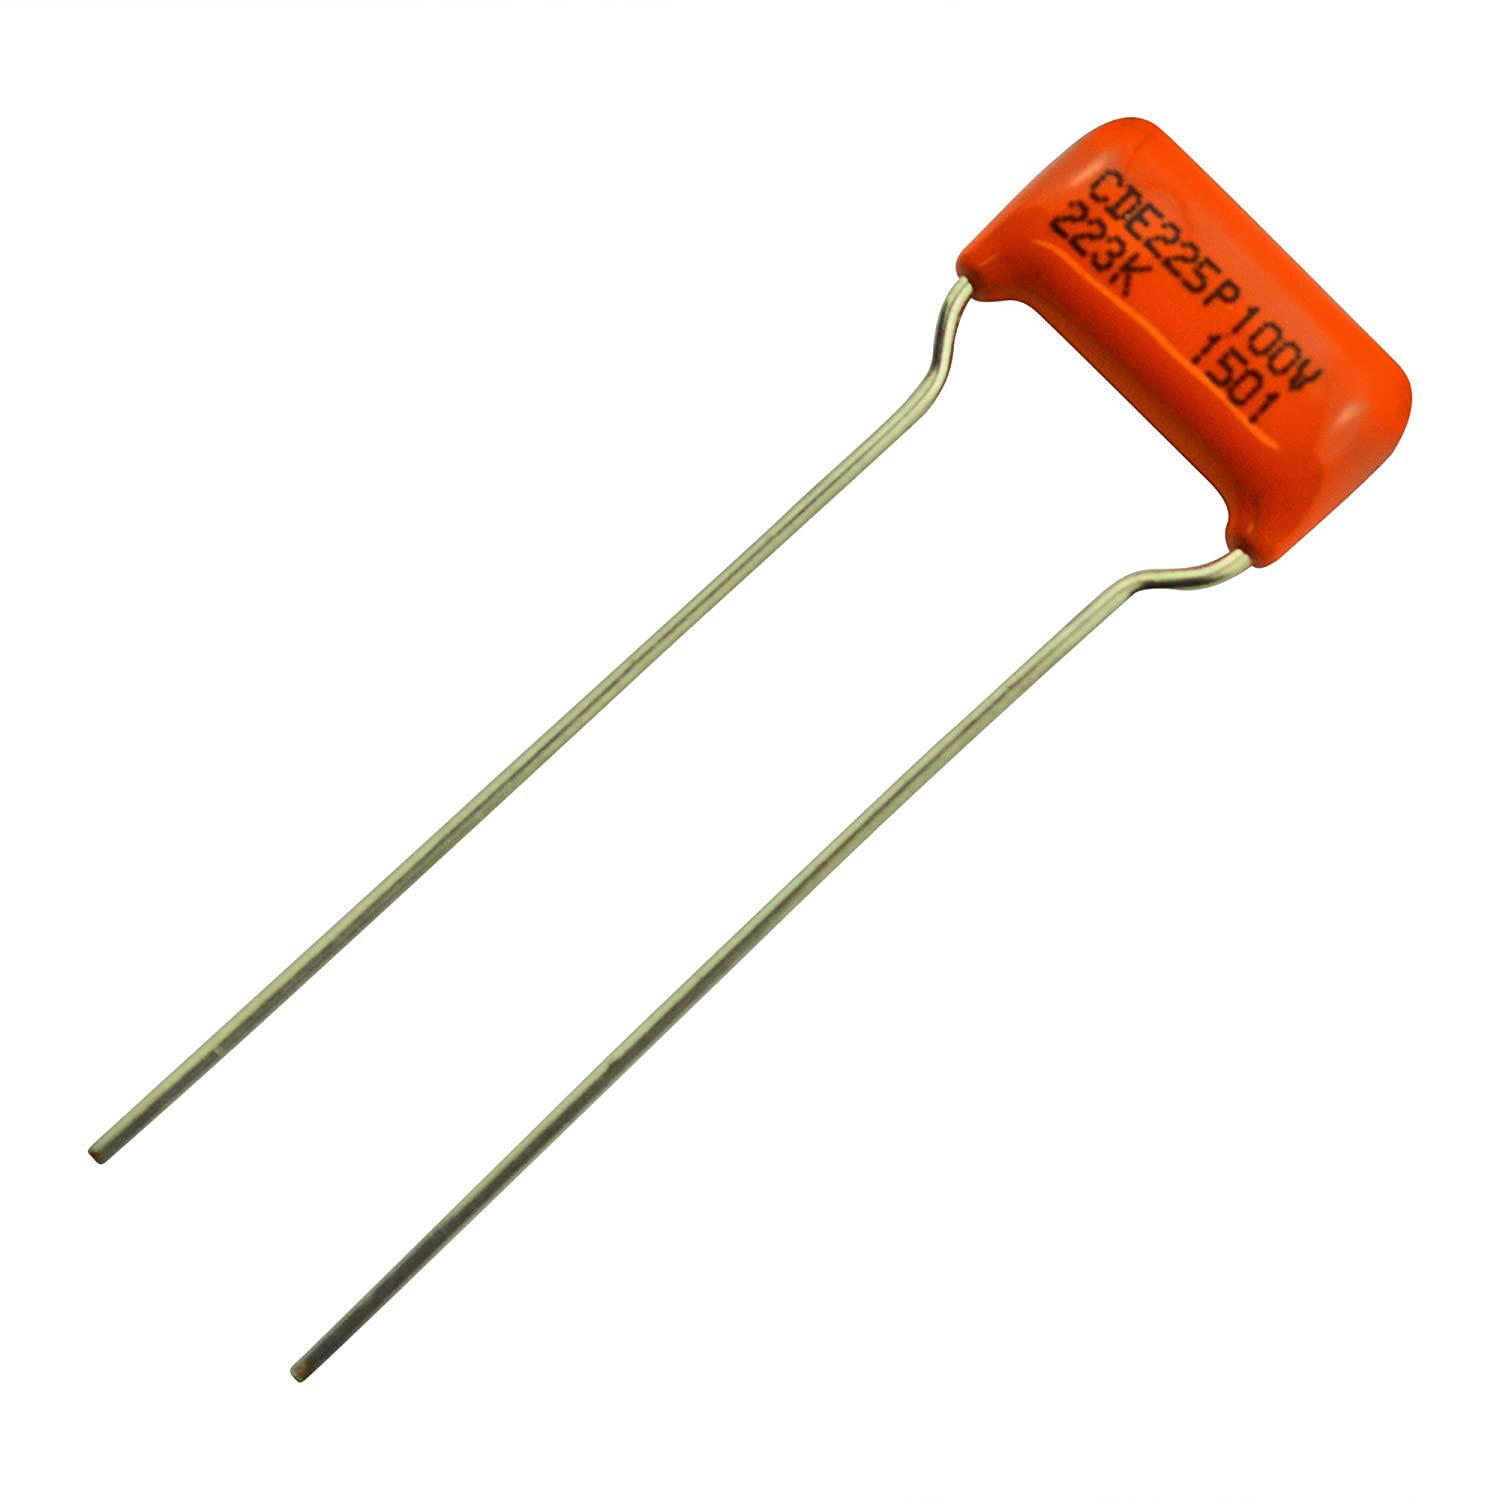 Sprague - Capacitor condensador para guitarra (0,022uf), color naranja: Amazon.es: Instrumentos musicales